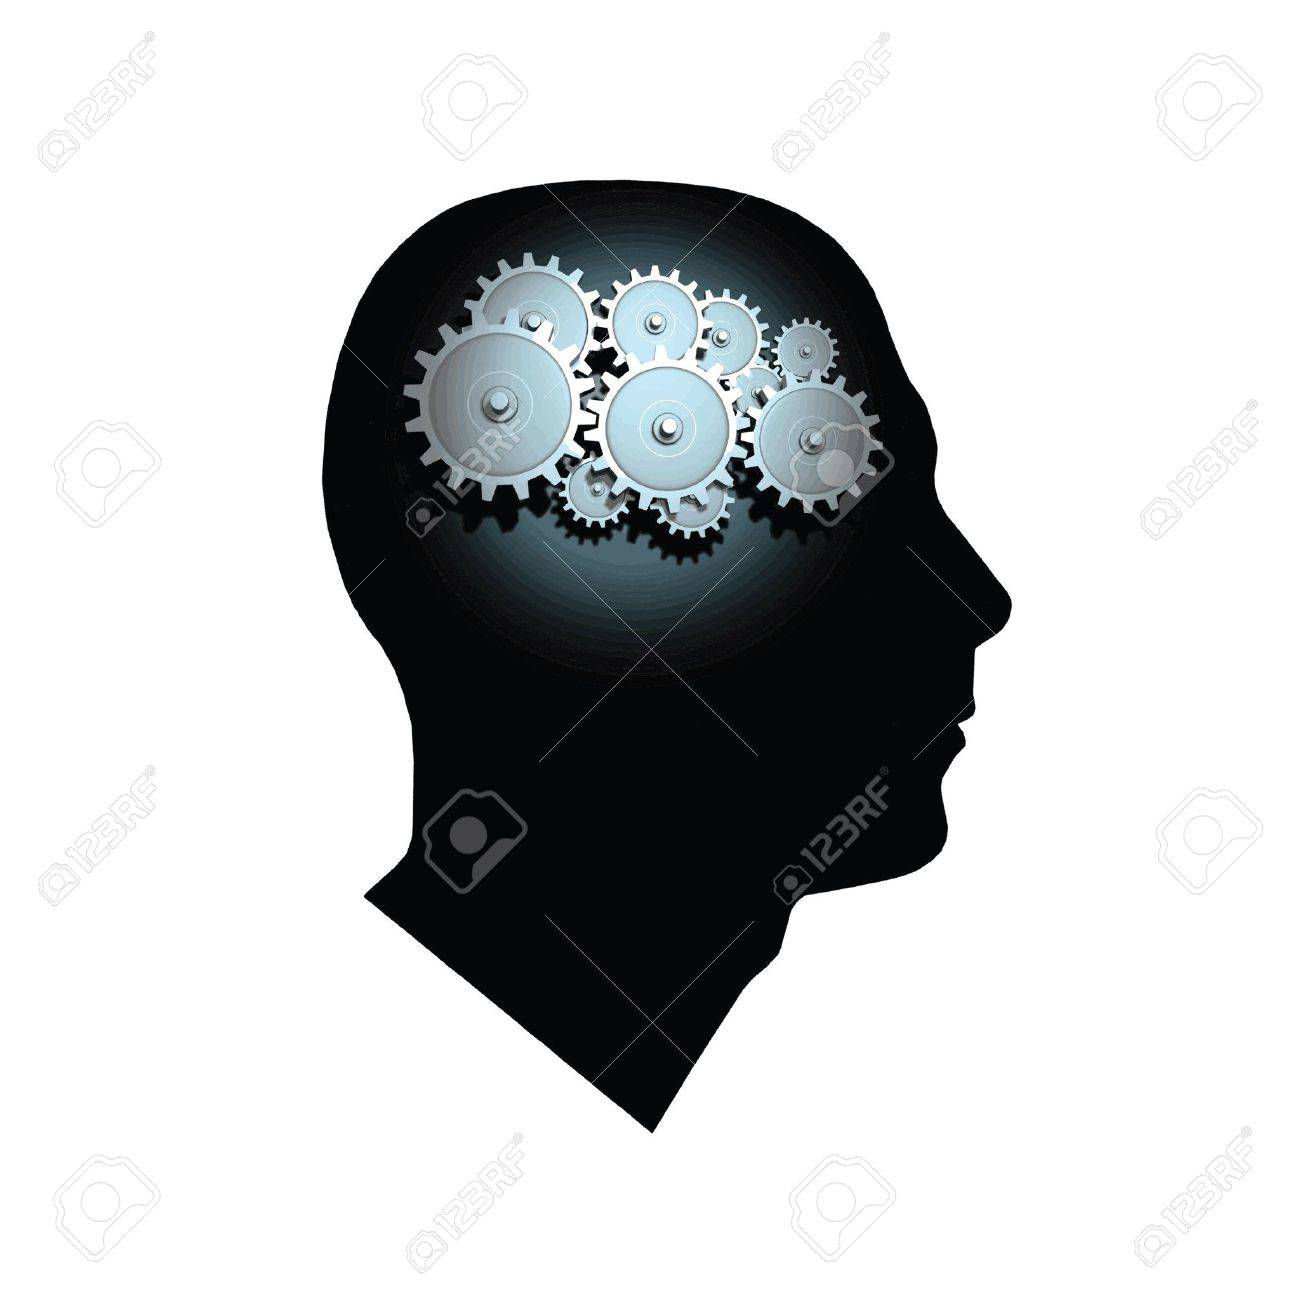 Image of gears inside of a man's head isolated on a white background. Stock Vector - 9329572